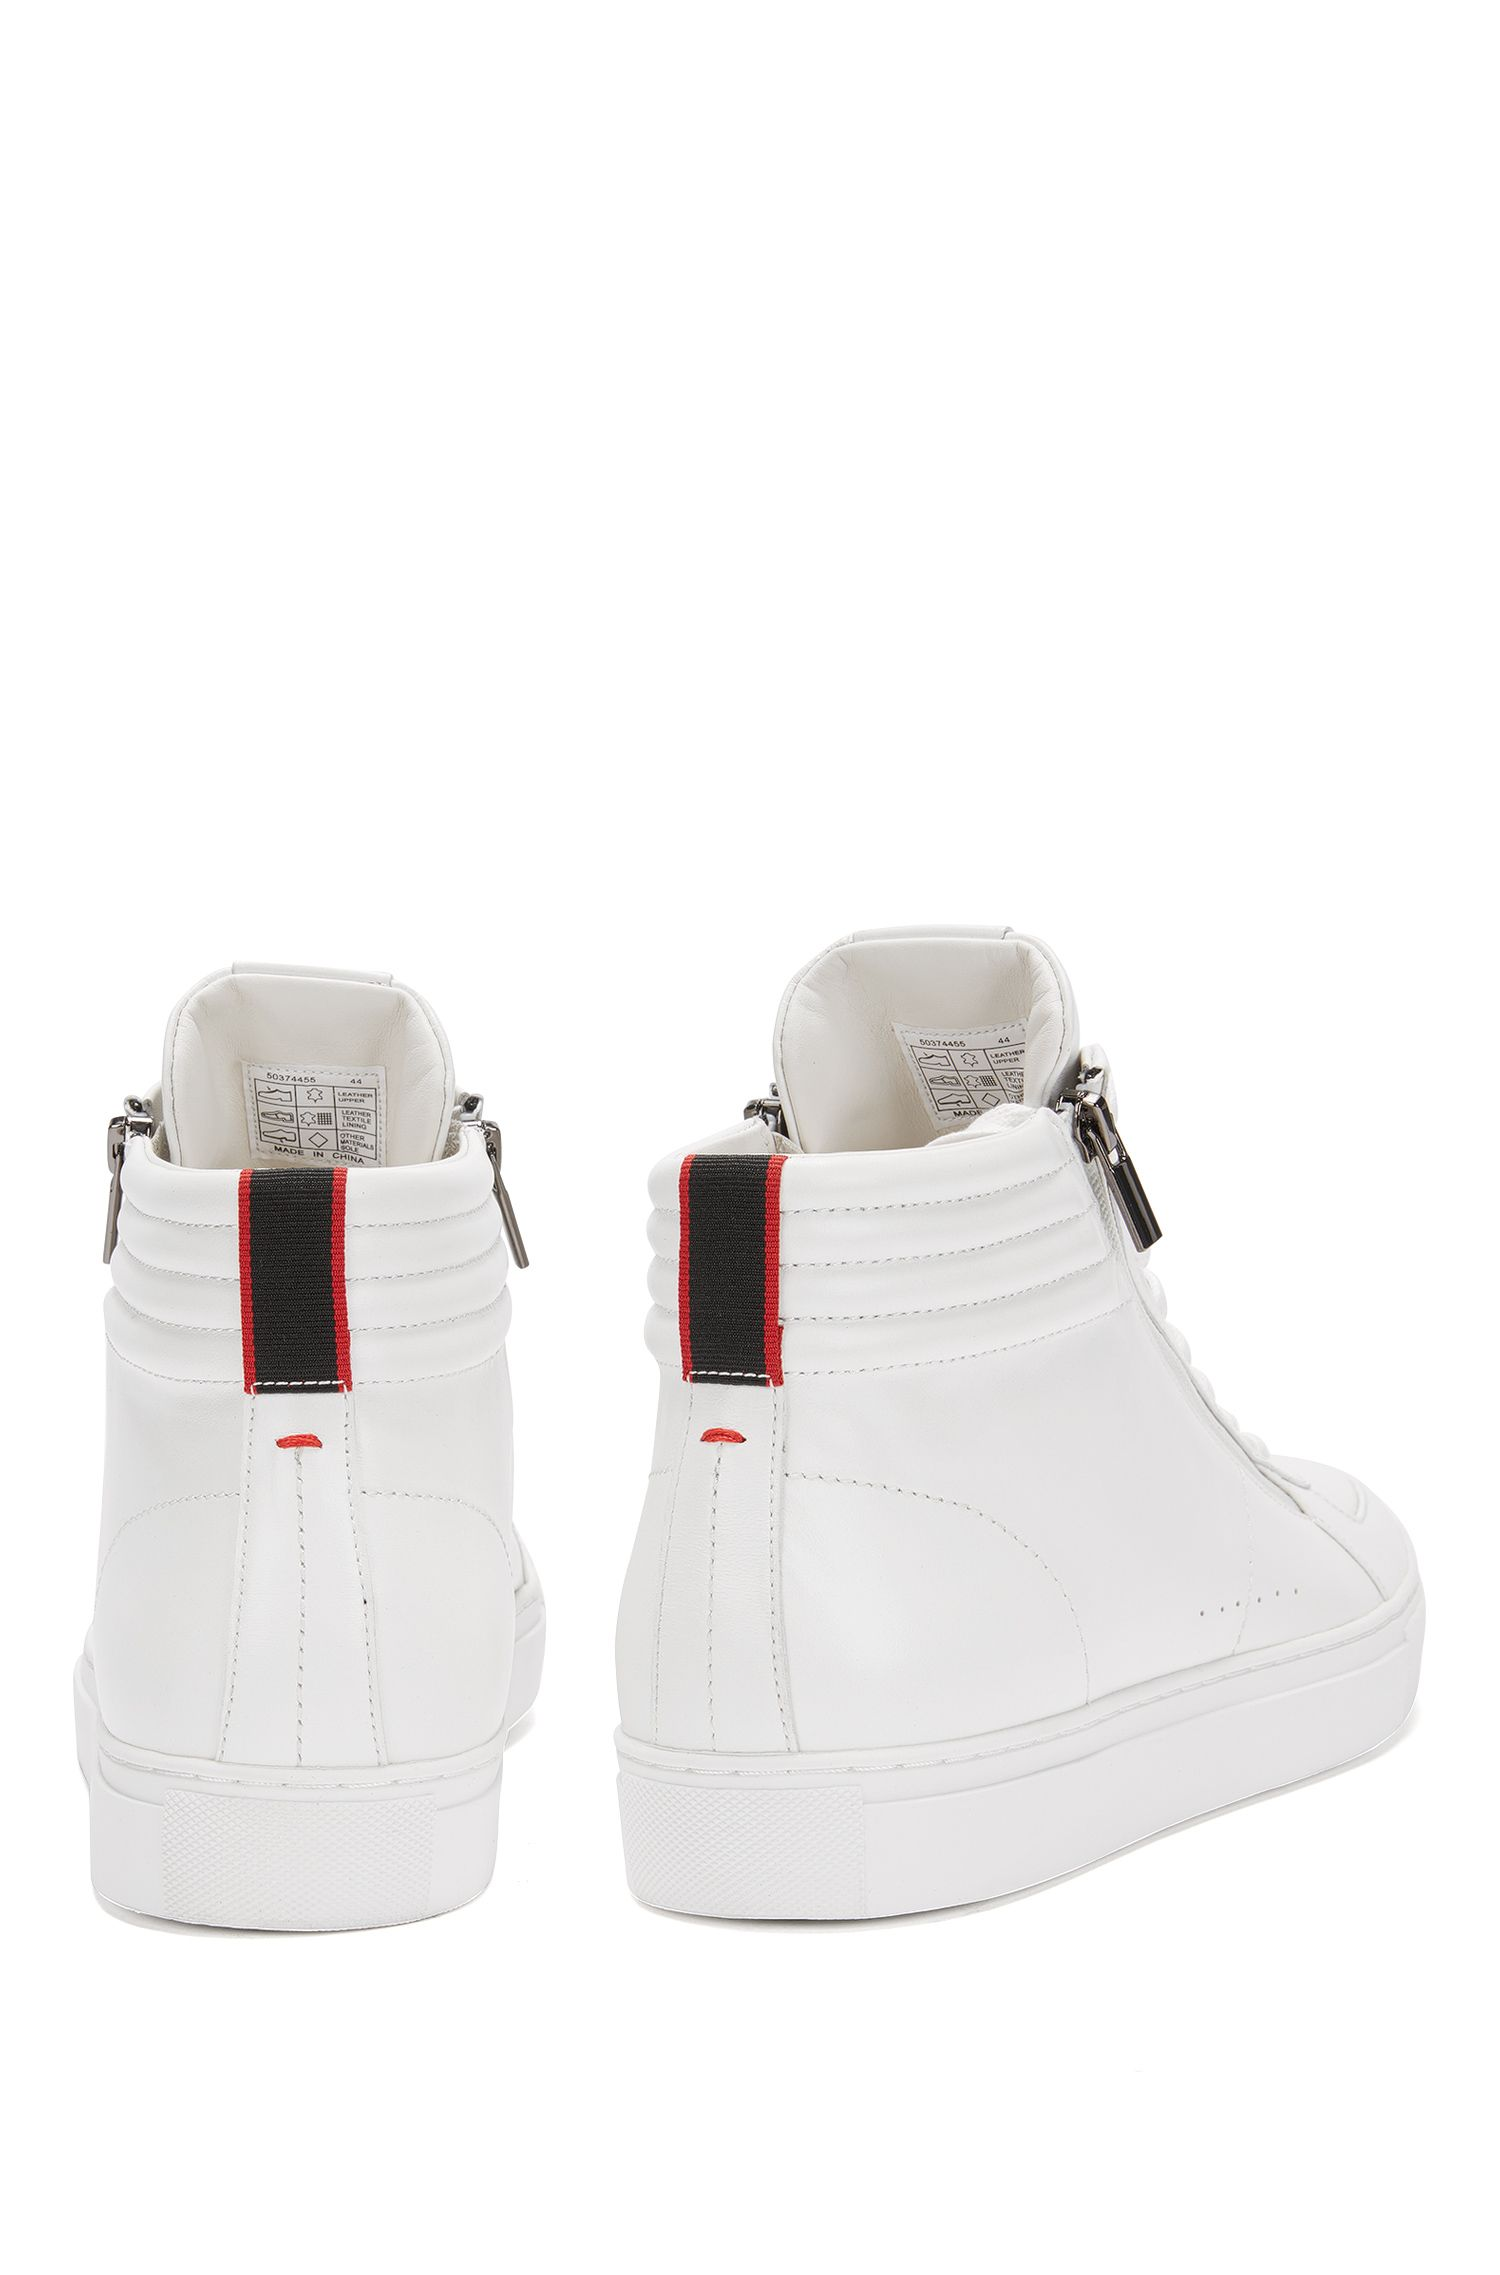 Leather High-Top Sneaker | Futurism Hito Itmtzp